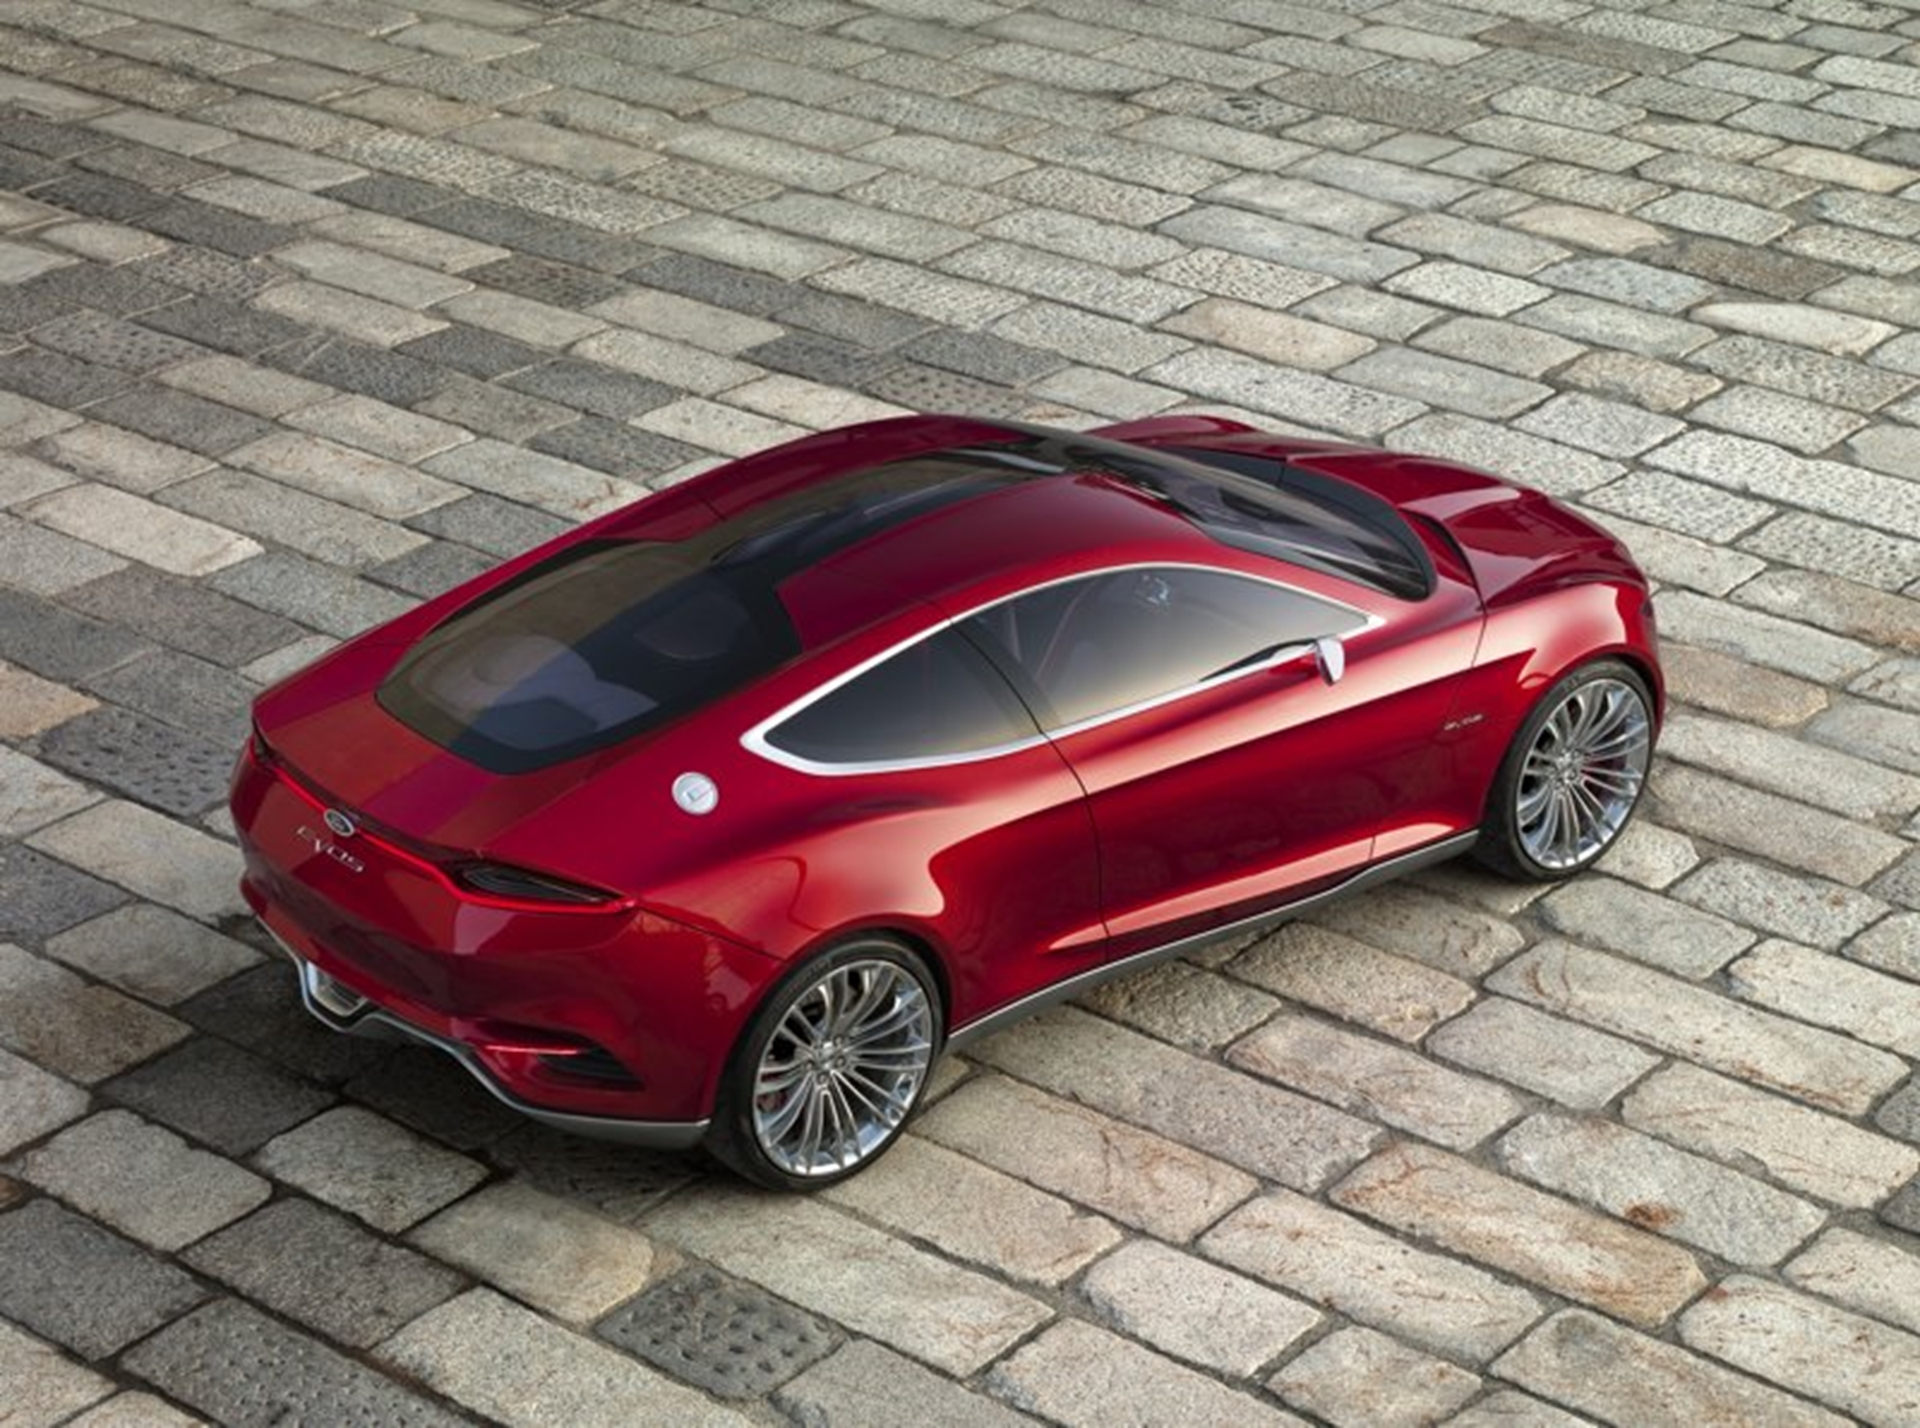 Ford Concept Car 2011 Top View Rear